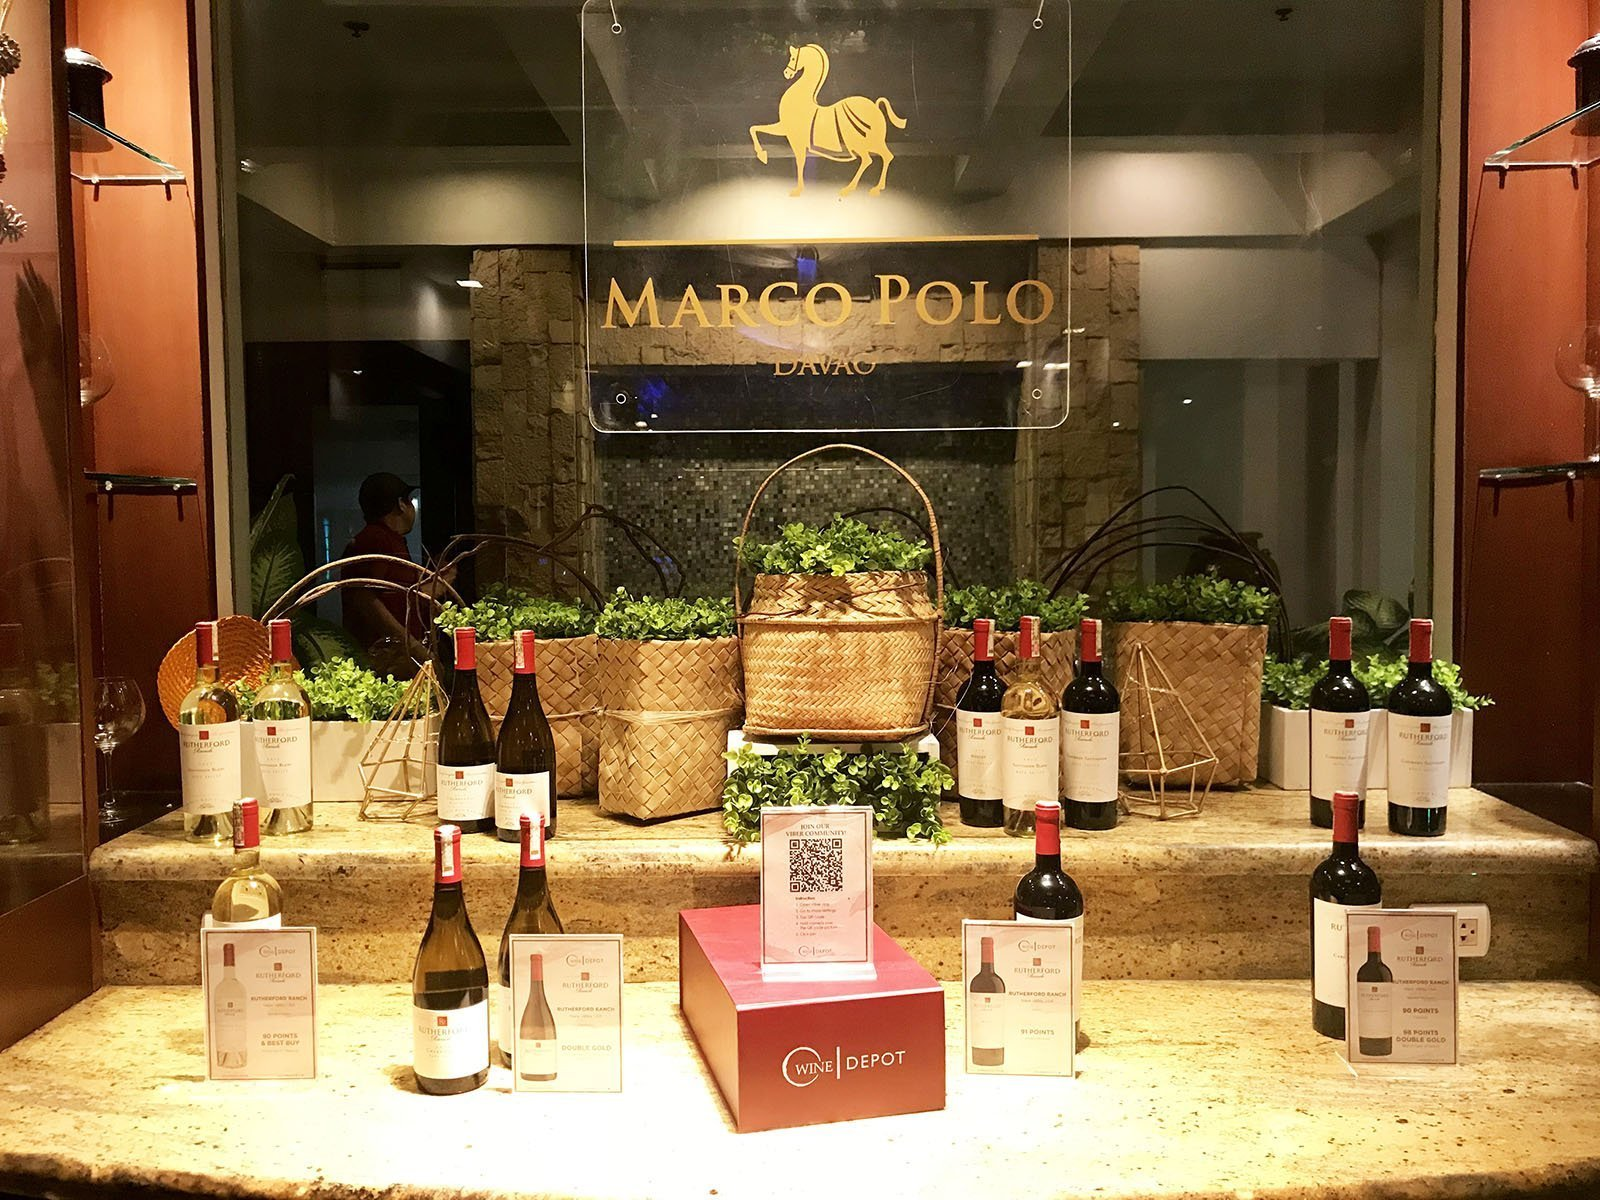 A Not-So-Serious Wine Dinner at the Marco Polo Davao